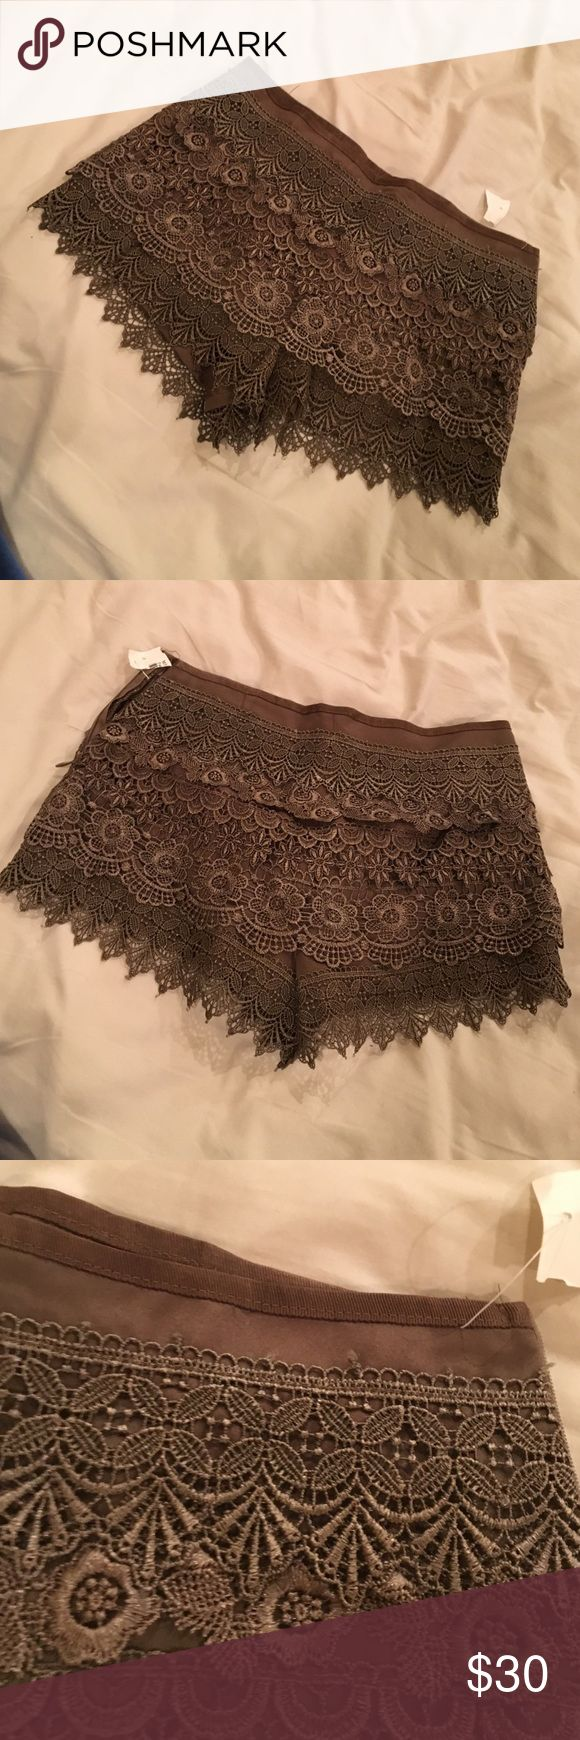 Brown shorts Size S, bought at a boutique Shorts